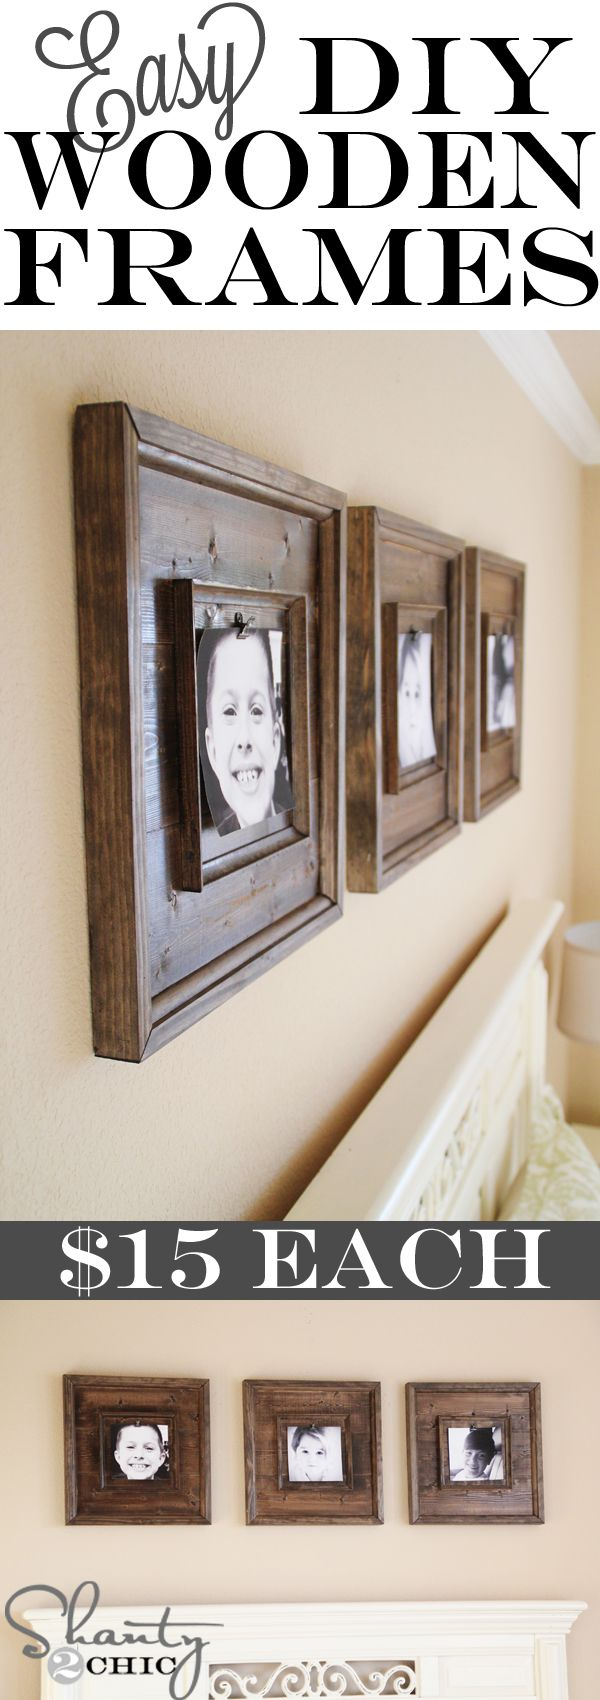 Cheap and Easy DIY Wooden Frames!  So cute!